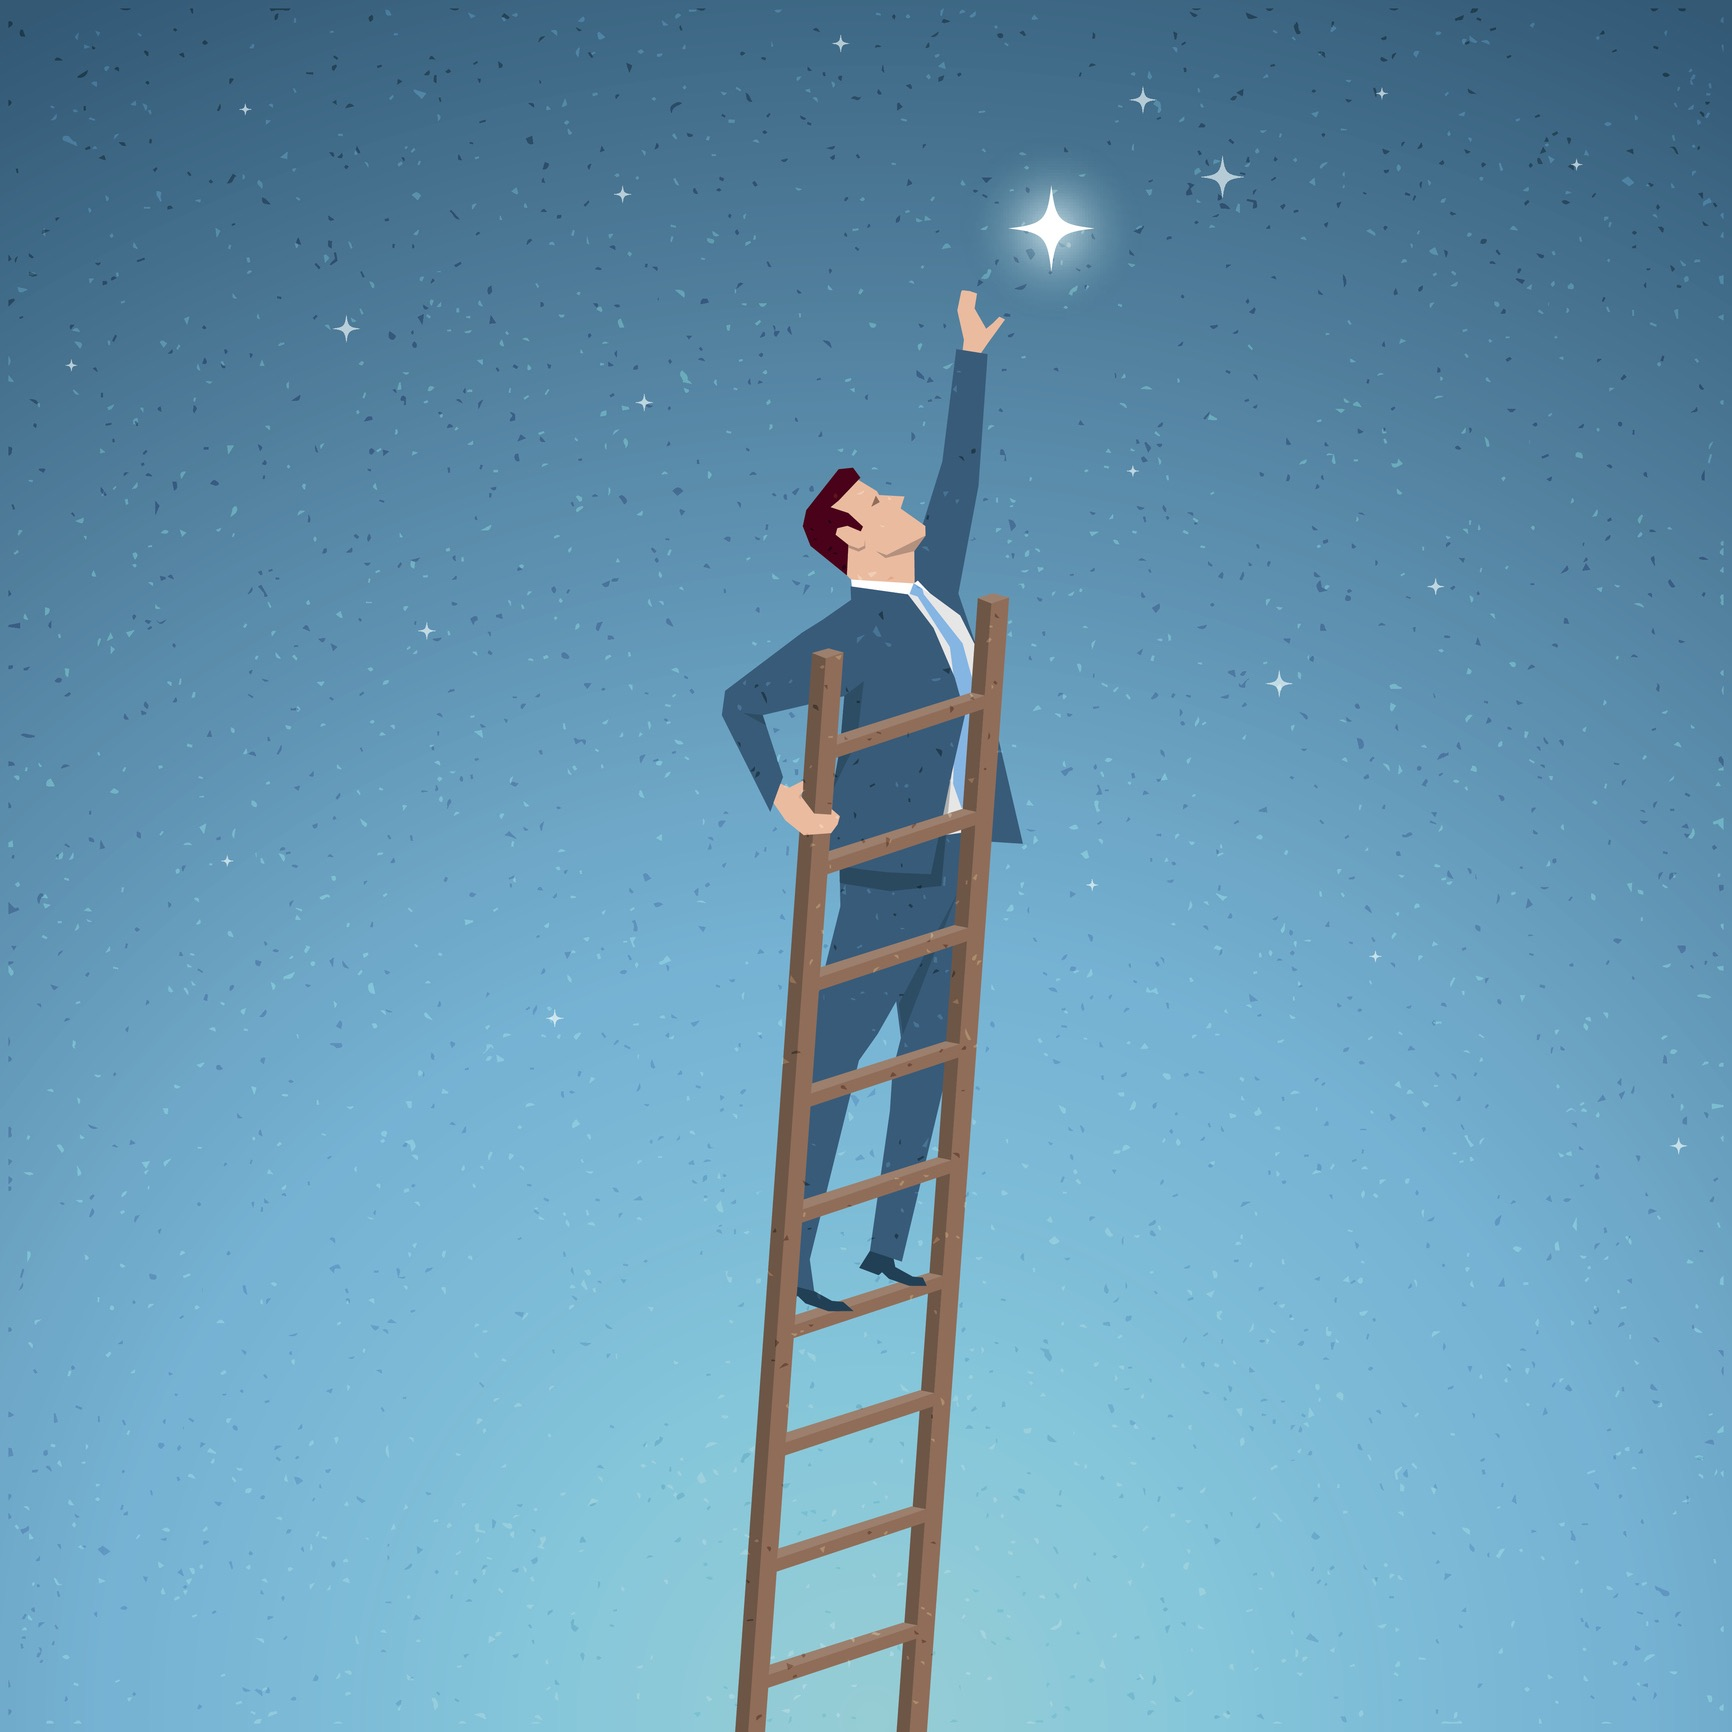 Business man on a ladder reaching for a shining star